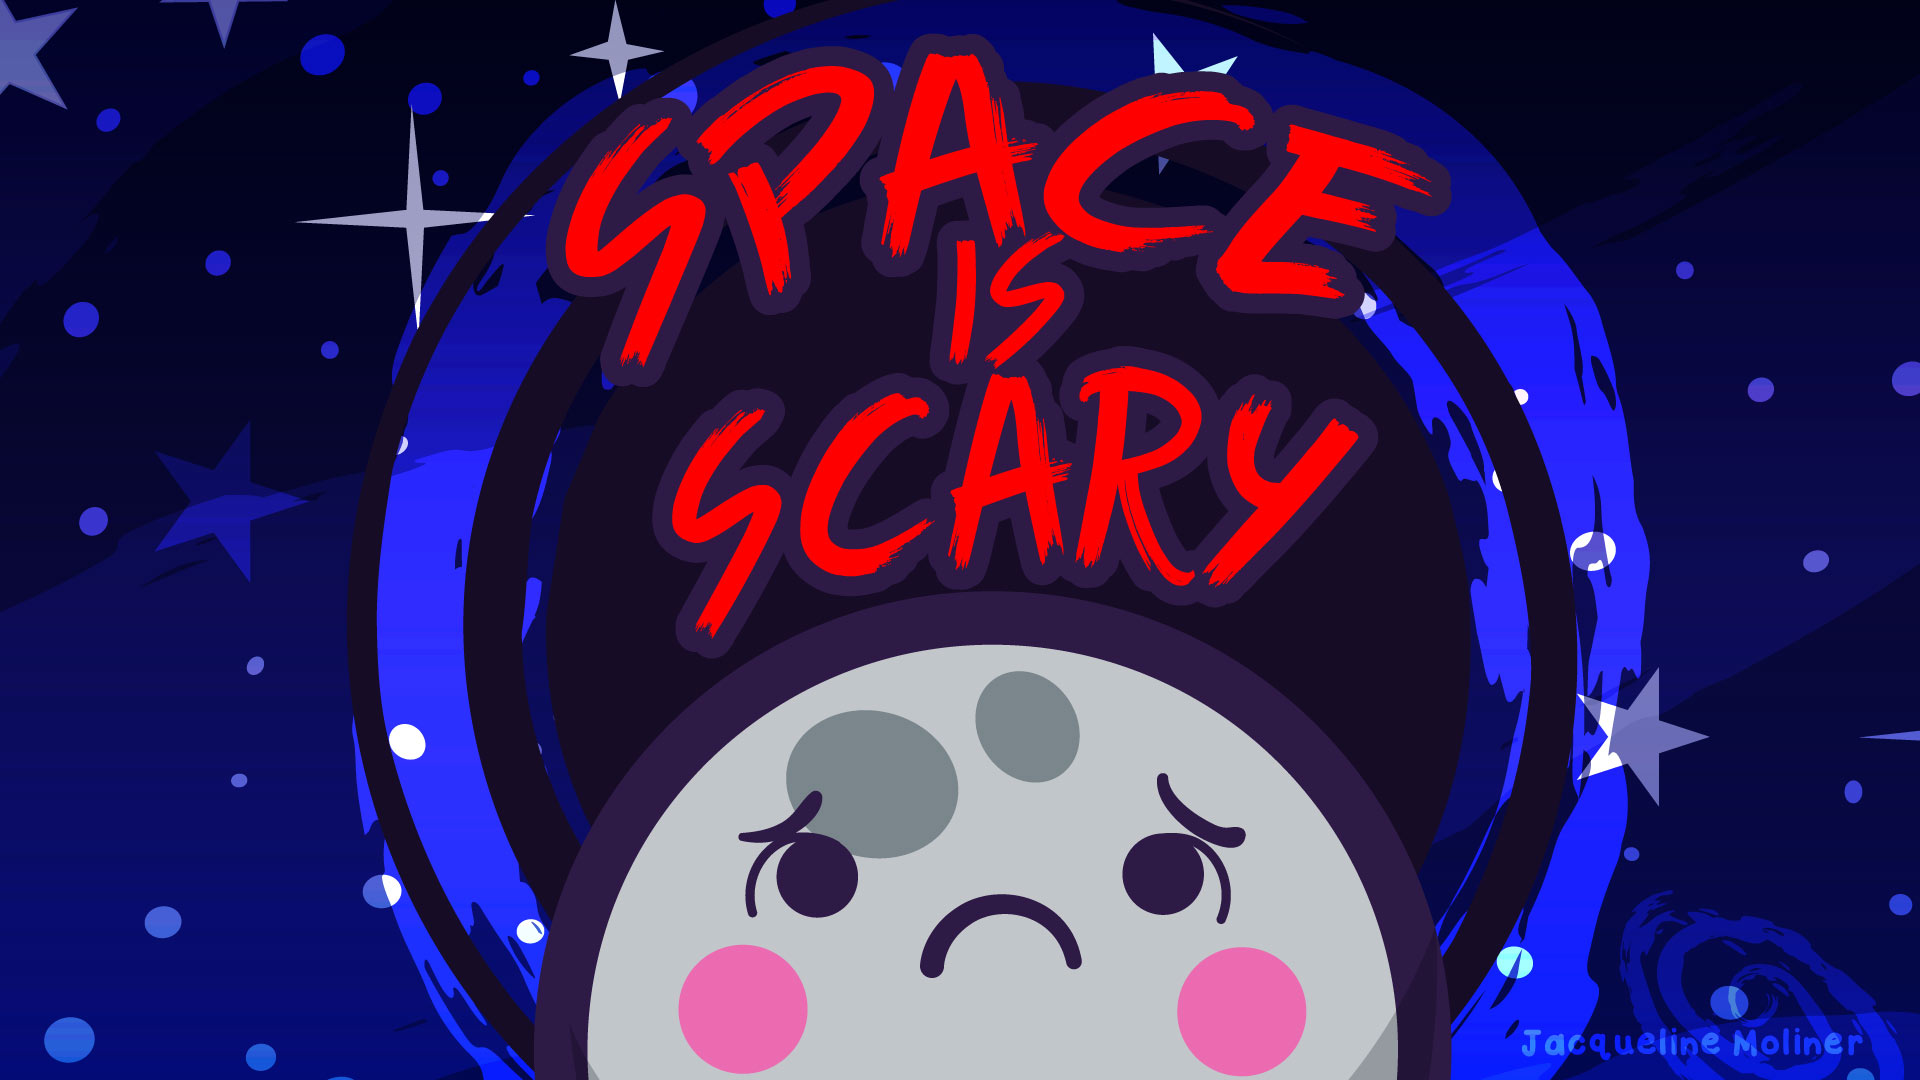 Space is Scary Wallpaper